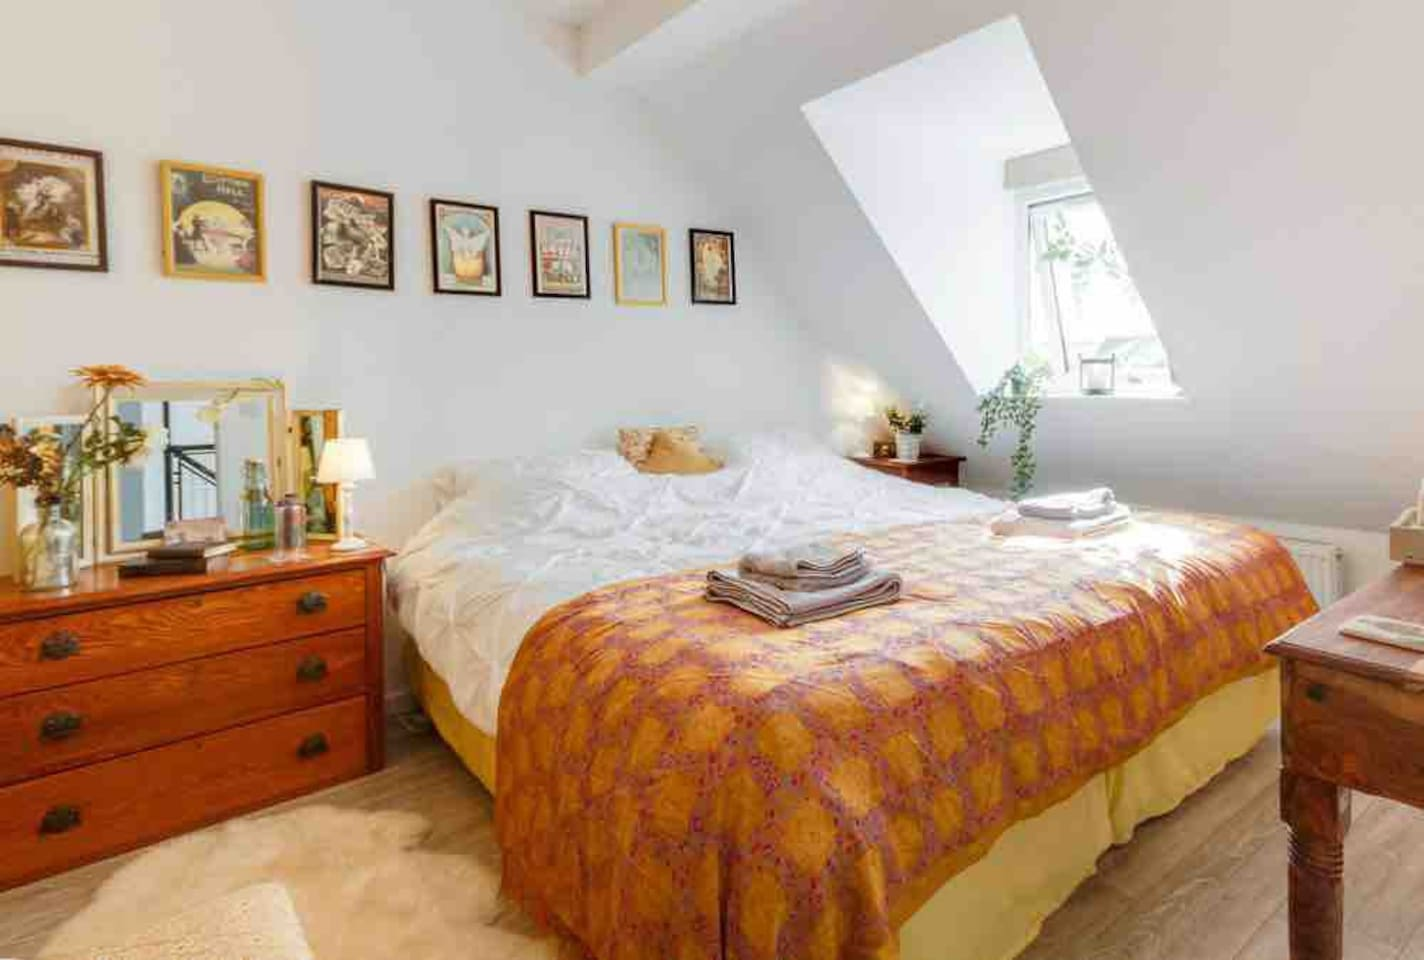 A beautiful bright comfortable Double Room awaits you at the end of a long day exploring the Cotswolds. Inherent is a huge emperor size bed with colour schemes of farrow and ball- old india yellow, black and grey.